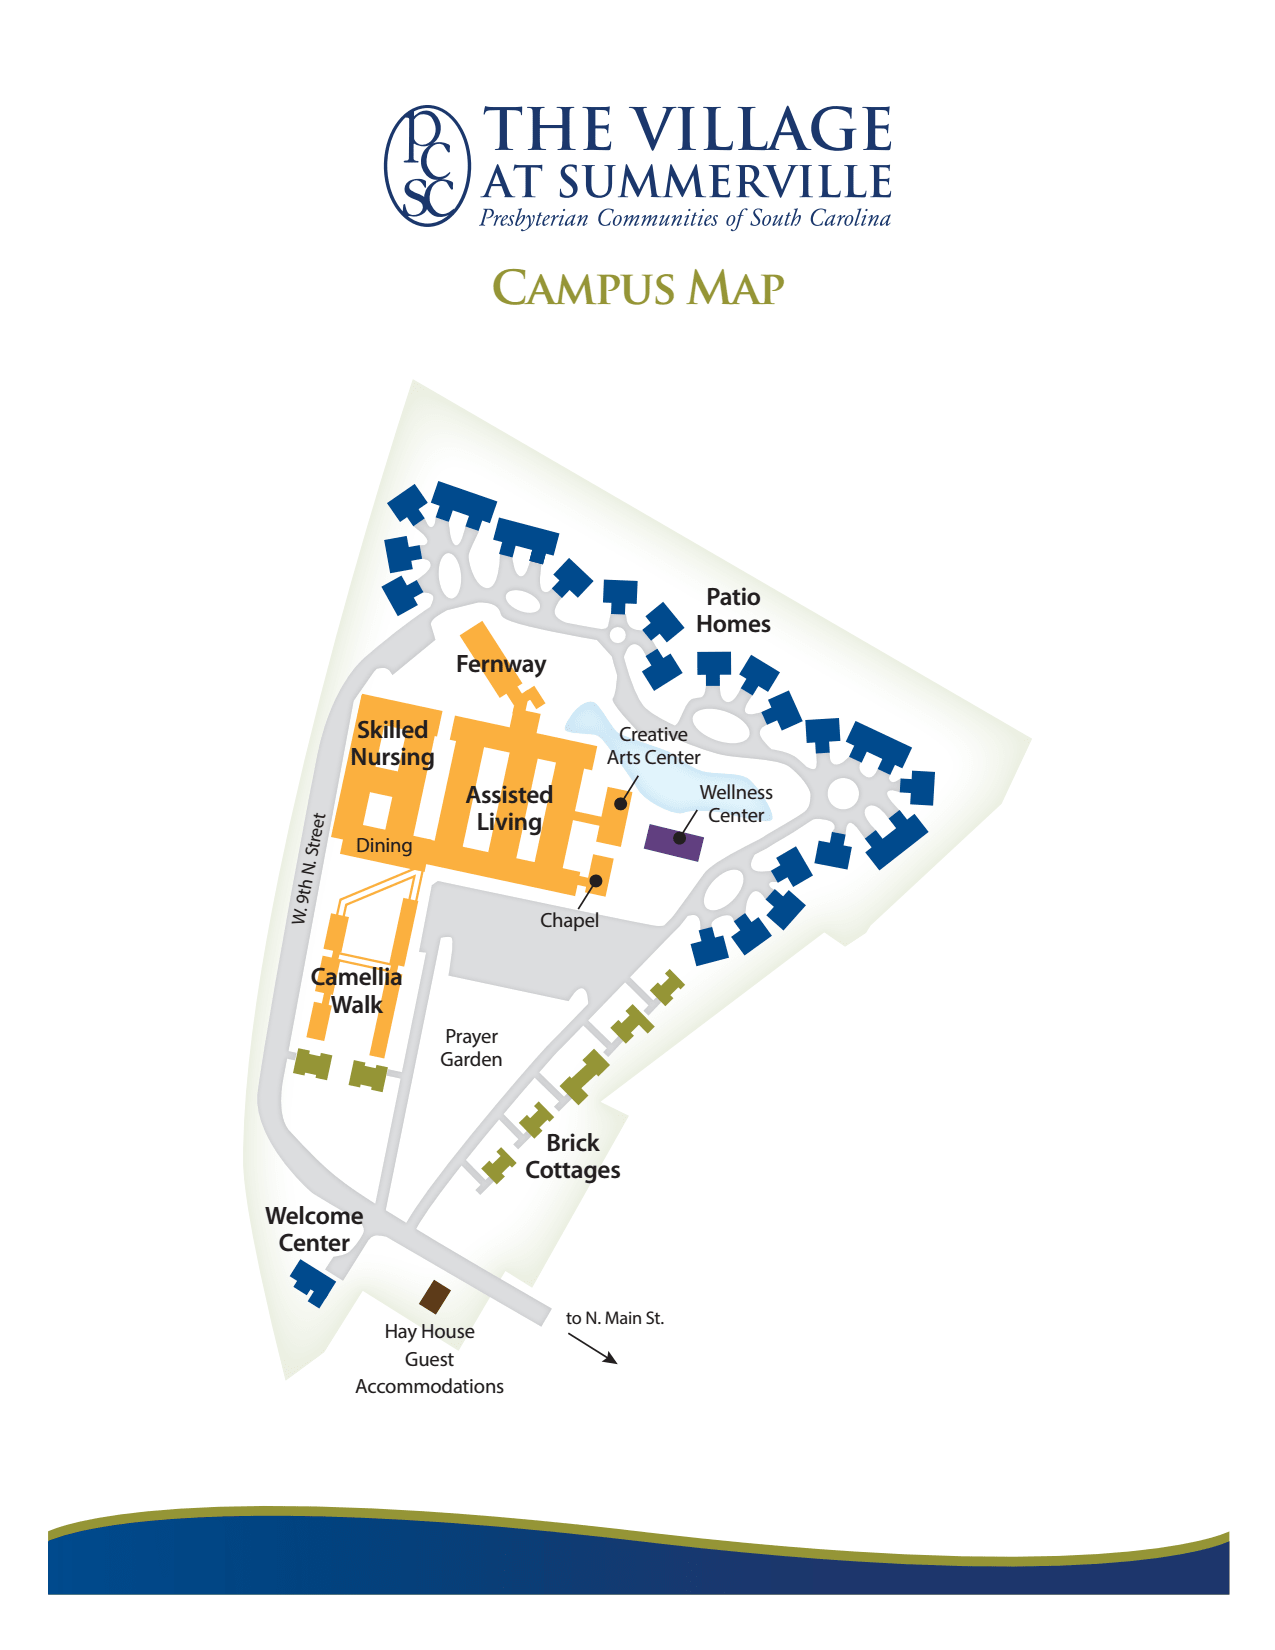 Campus map of The Village at Summerville in Summerville